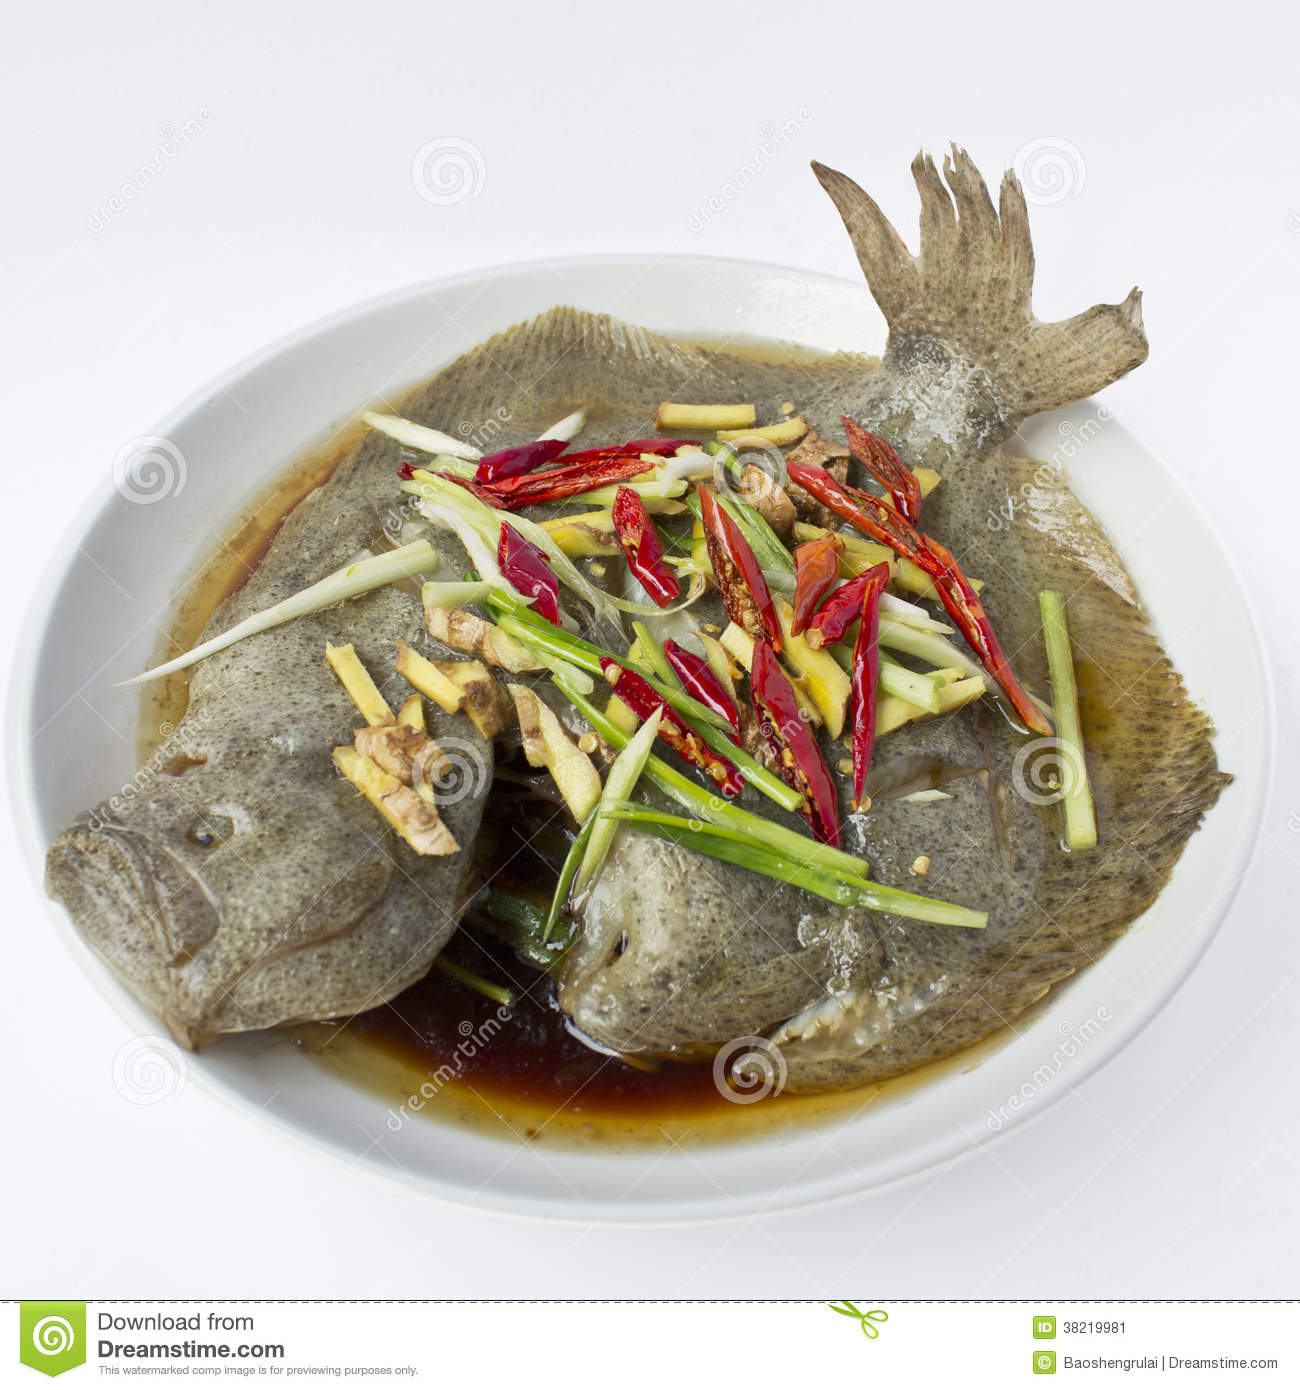 Turbot fish stock image image 38219981 for Turbot fish price